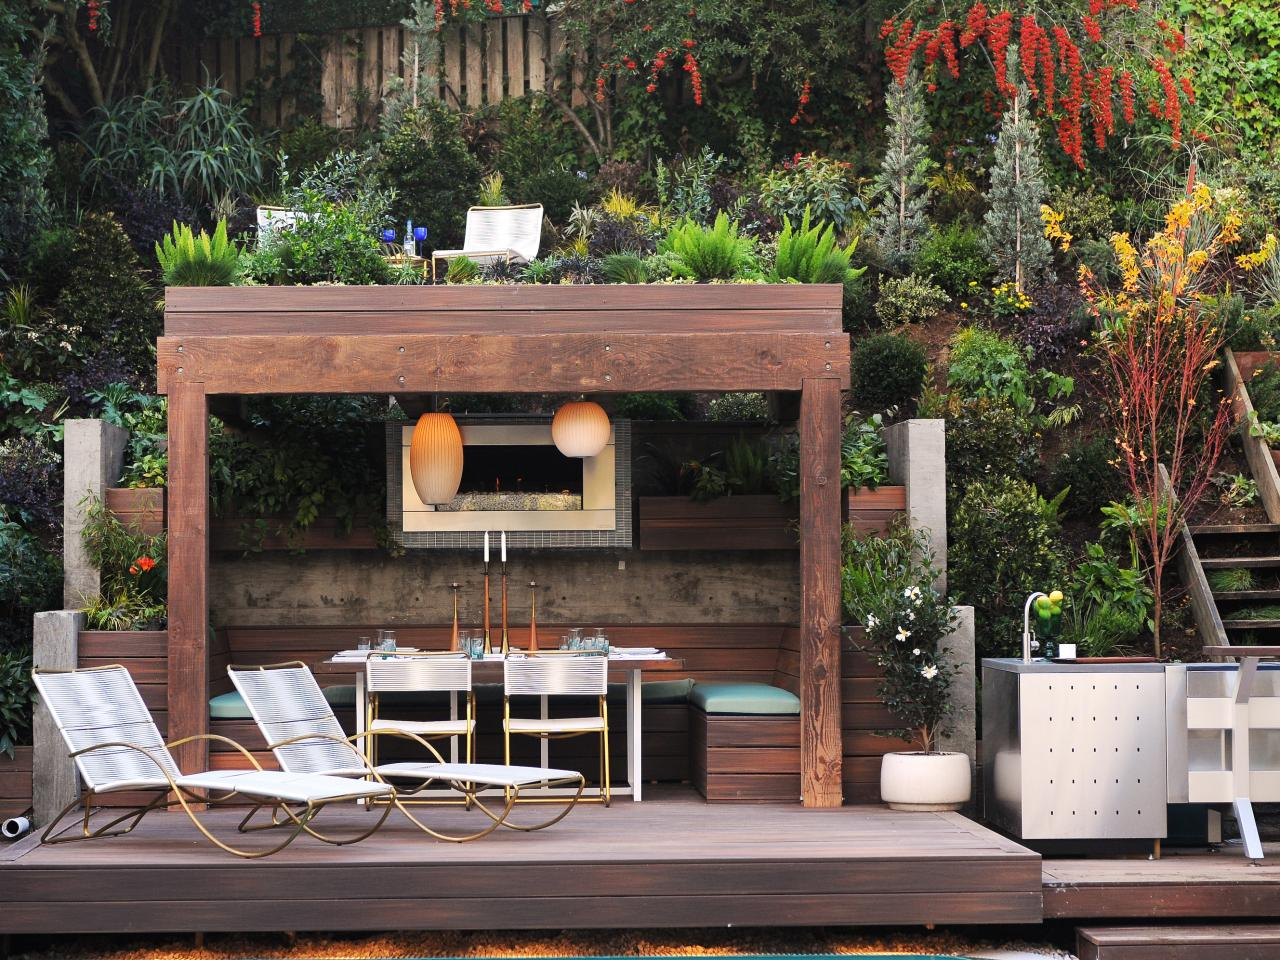 horjd305_outdoor-dining-pergola-seating-area_s4x3.jpg.rend.hgtvcom.1280.960